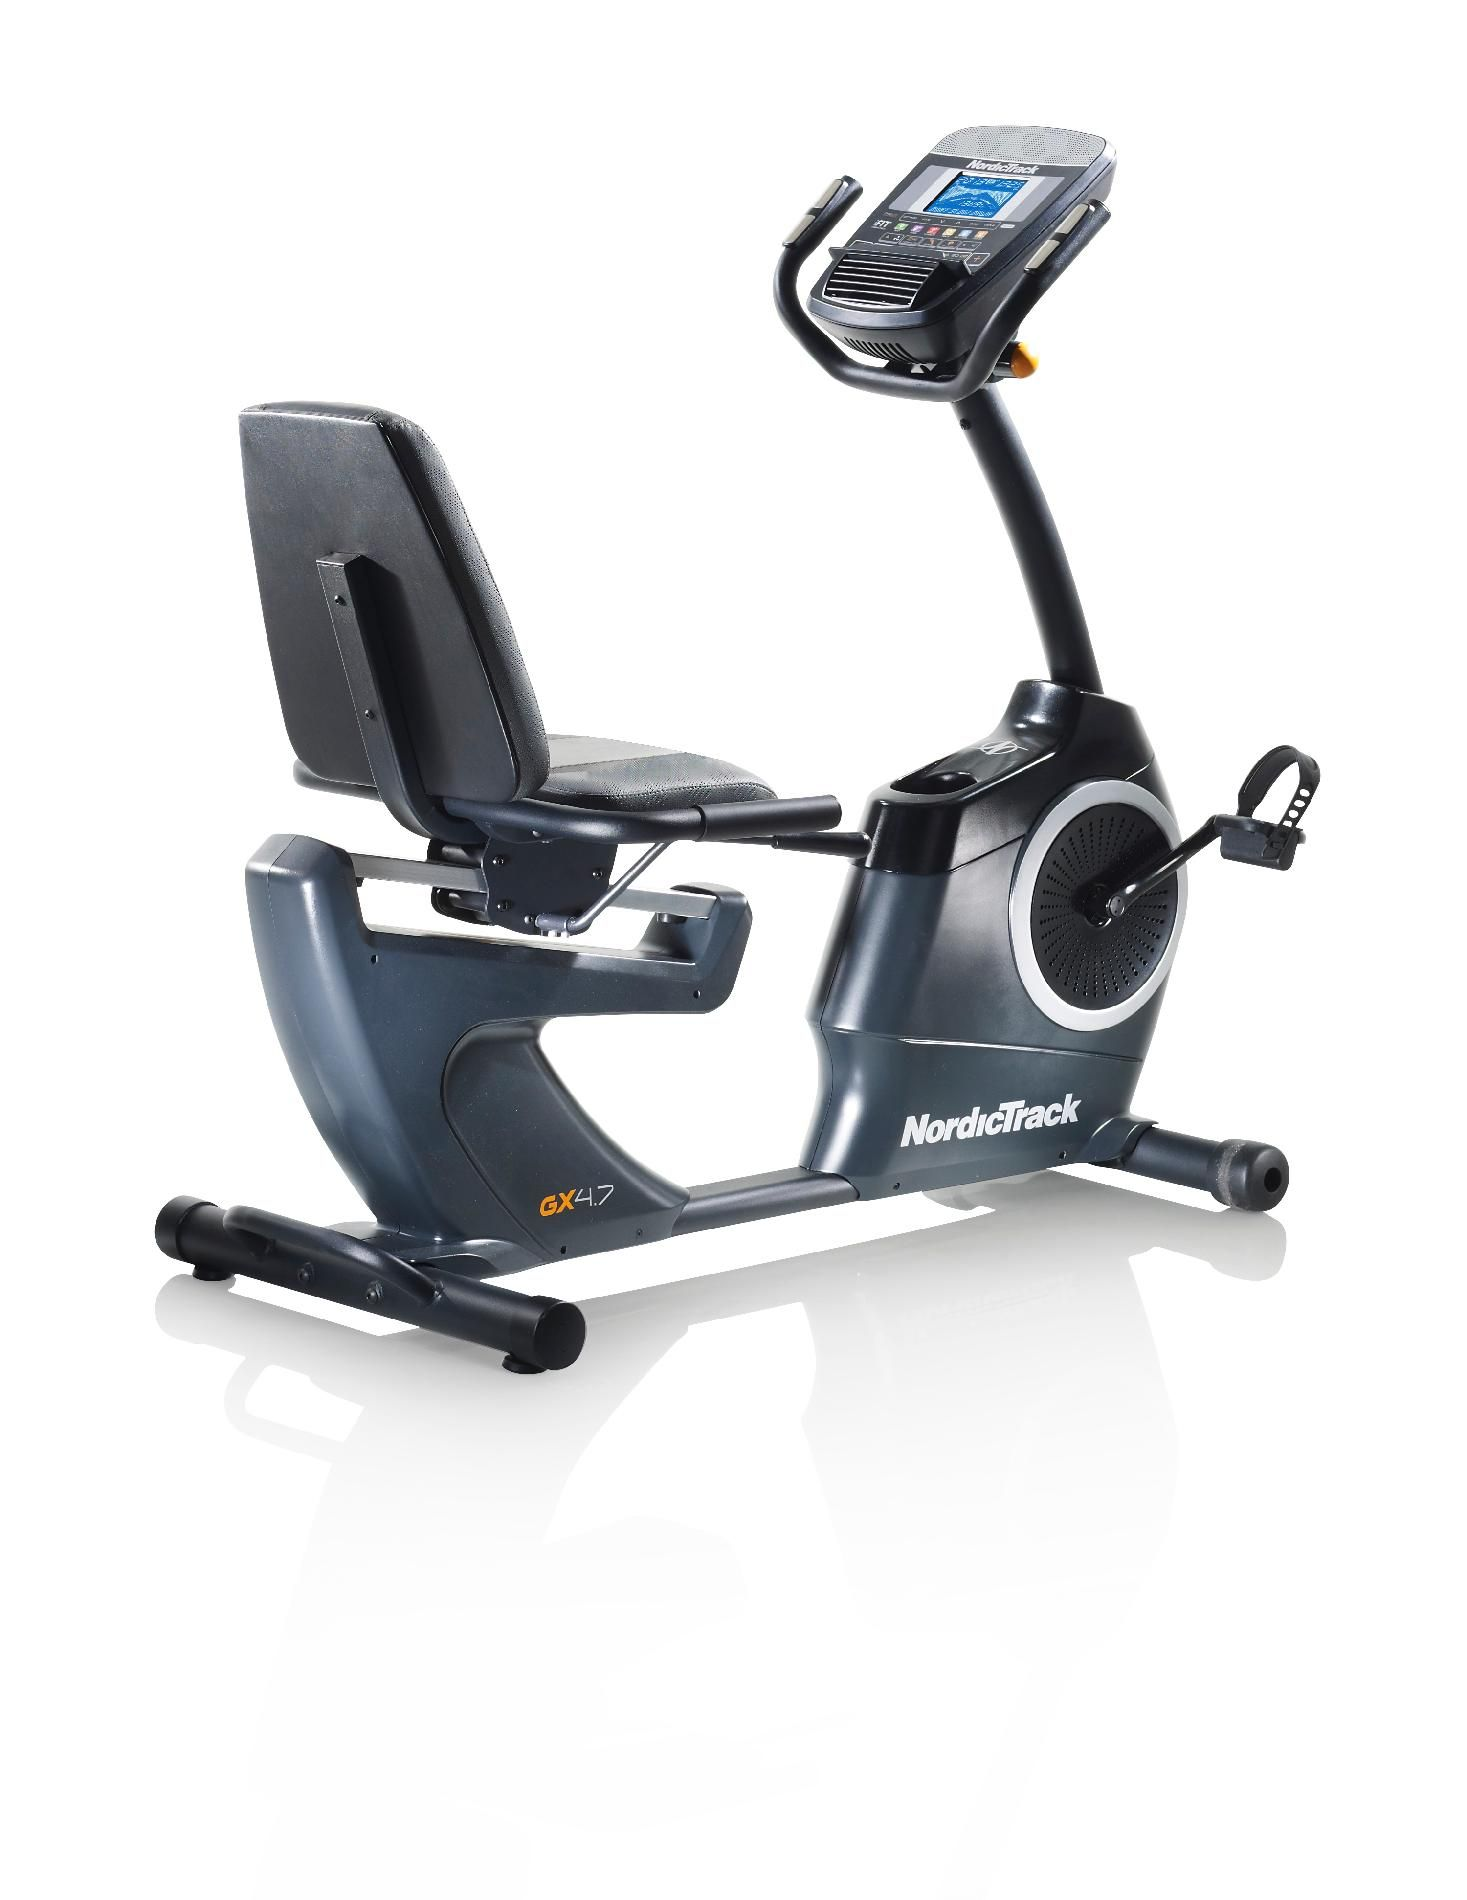 Nordictrack Gx 4 7 Recumbent Cycle Biking Workout Cycling